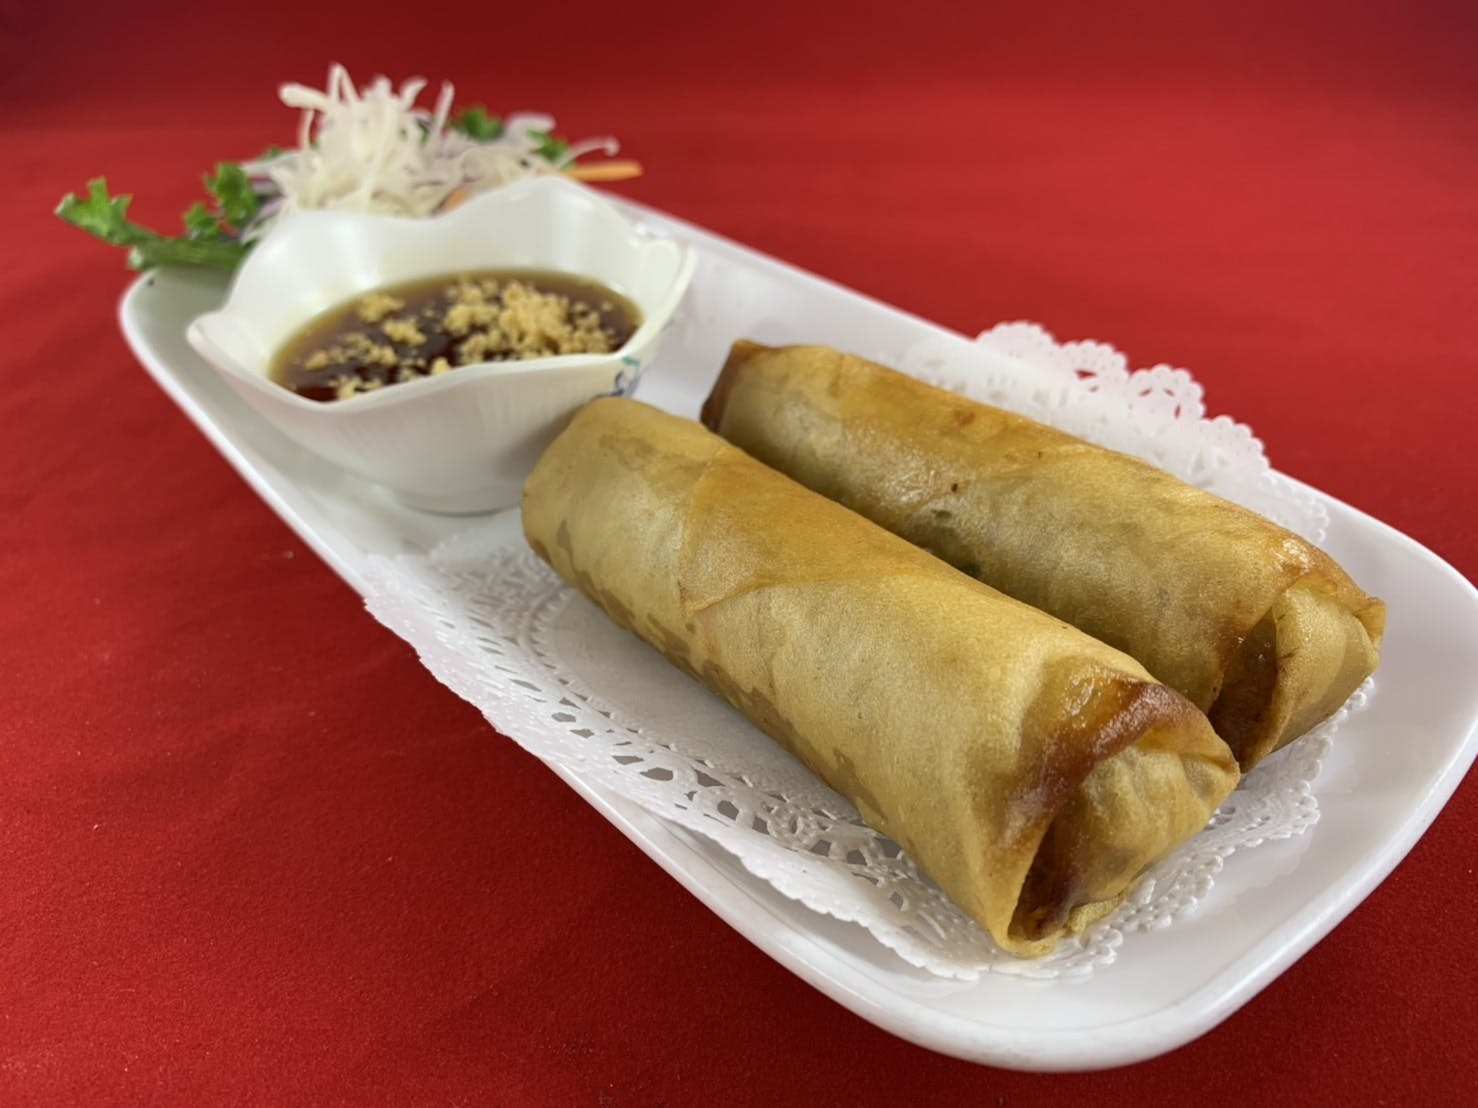 1. Spring Roll (Dinner) from Sa-Bai Thong - University Ave in Madison, WI